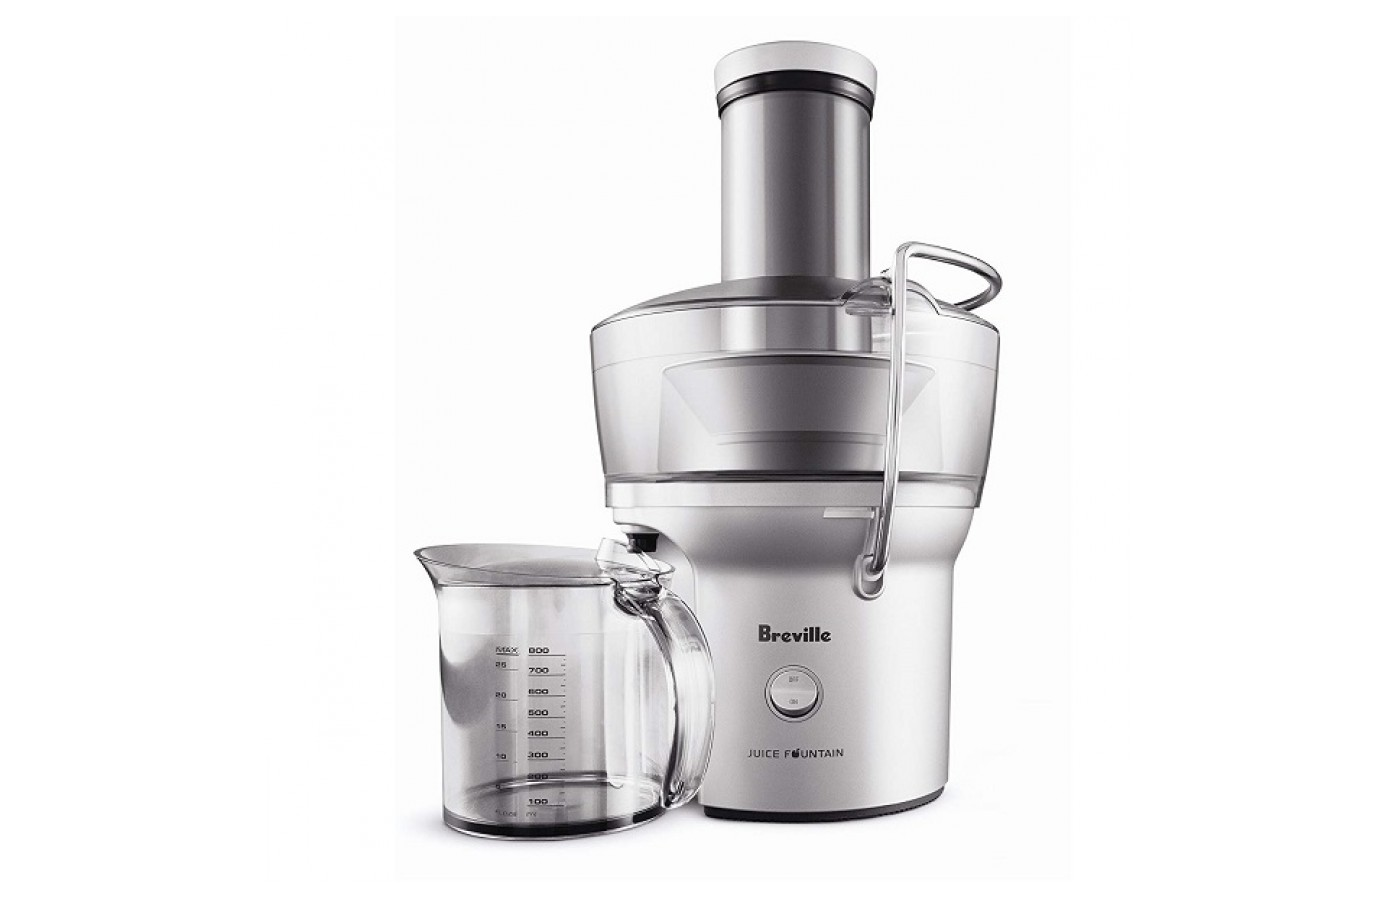 The Breville BJE200XL offers super fast juicing for those on the go.